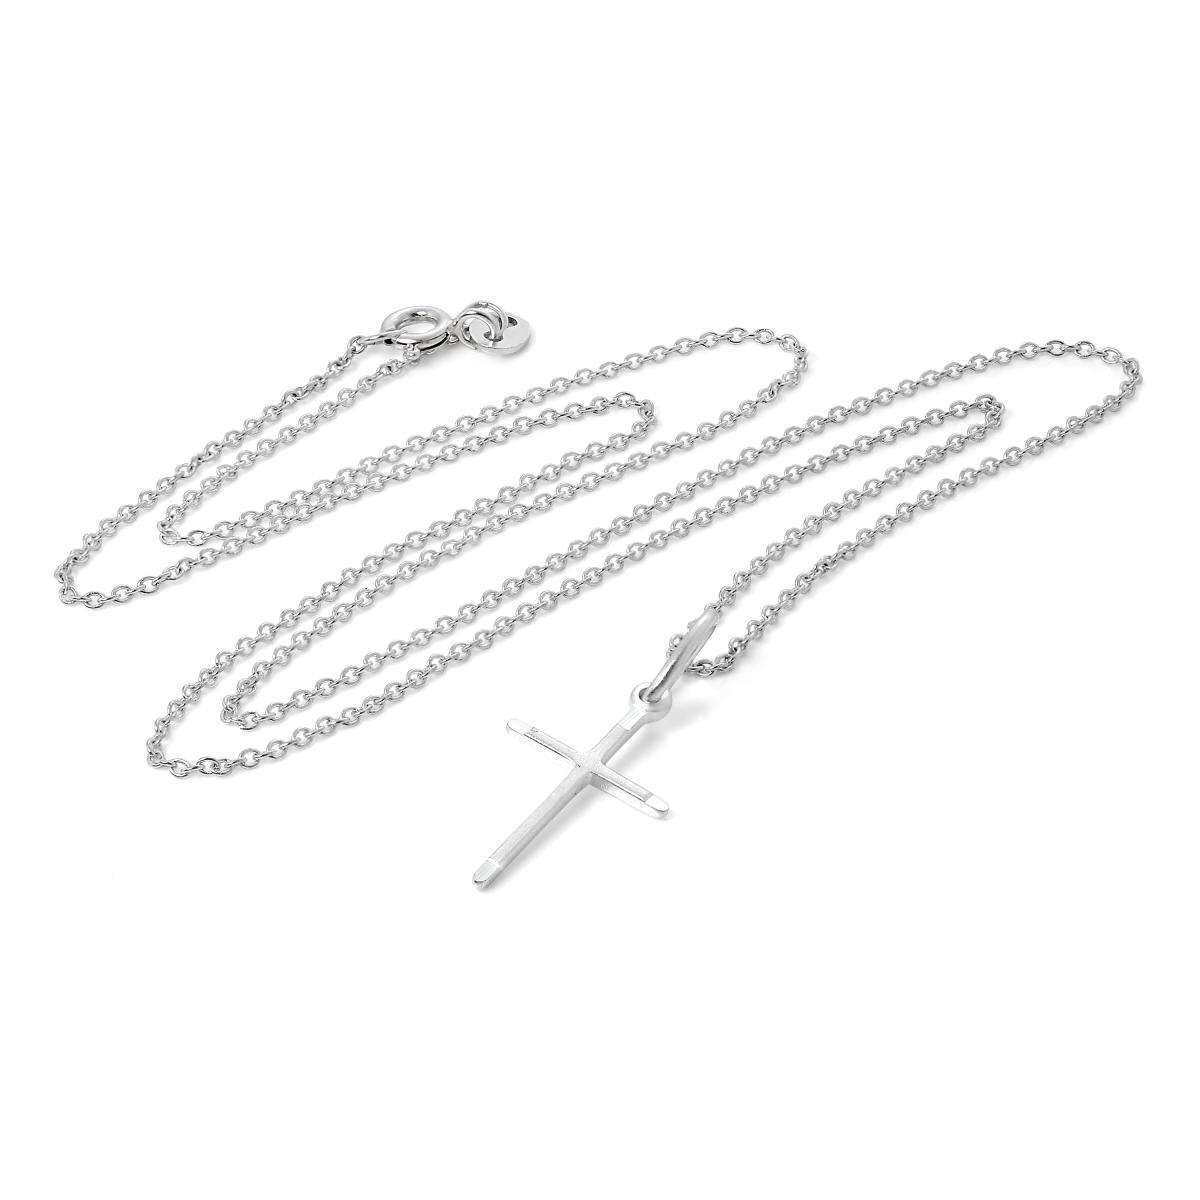 Alterative image for Sterling Silver Matt & Polished Cross Pendant Necklace 16 - 22 Inches